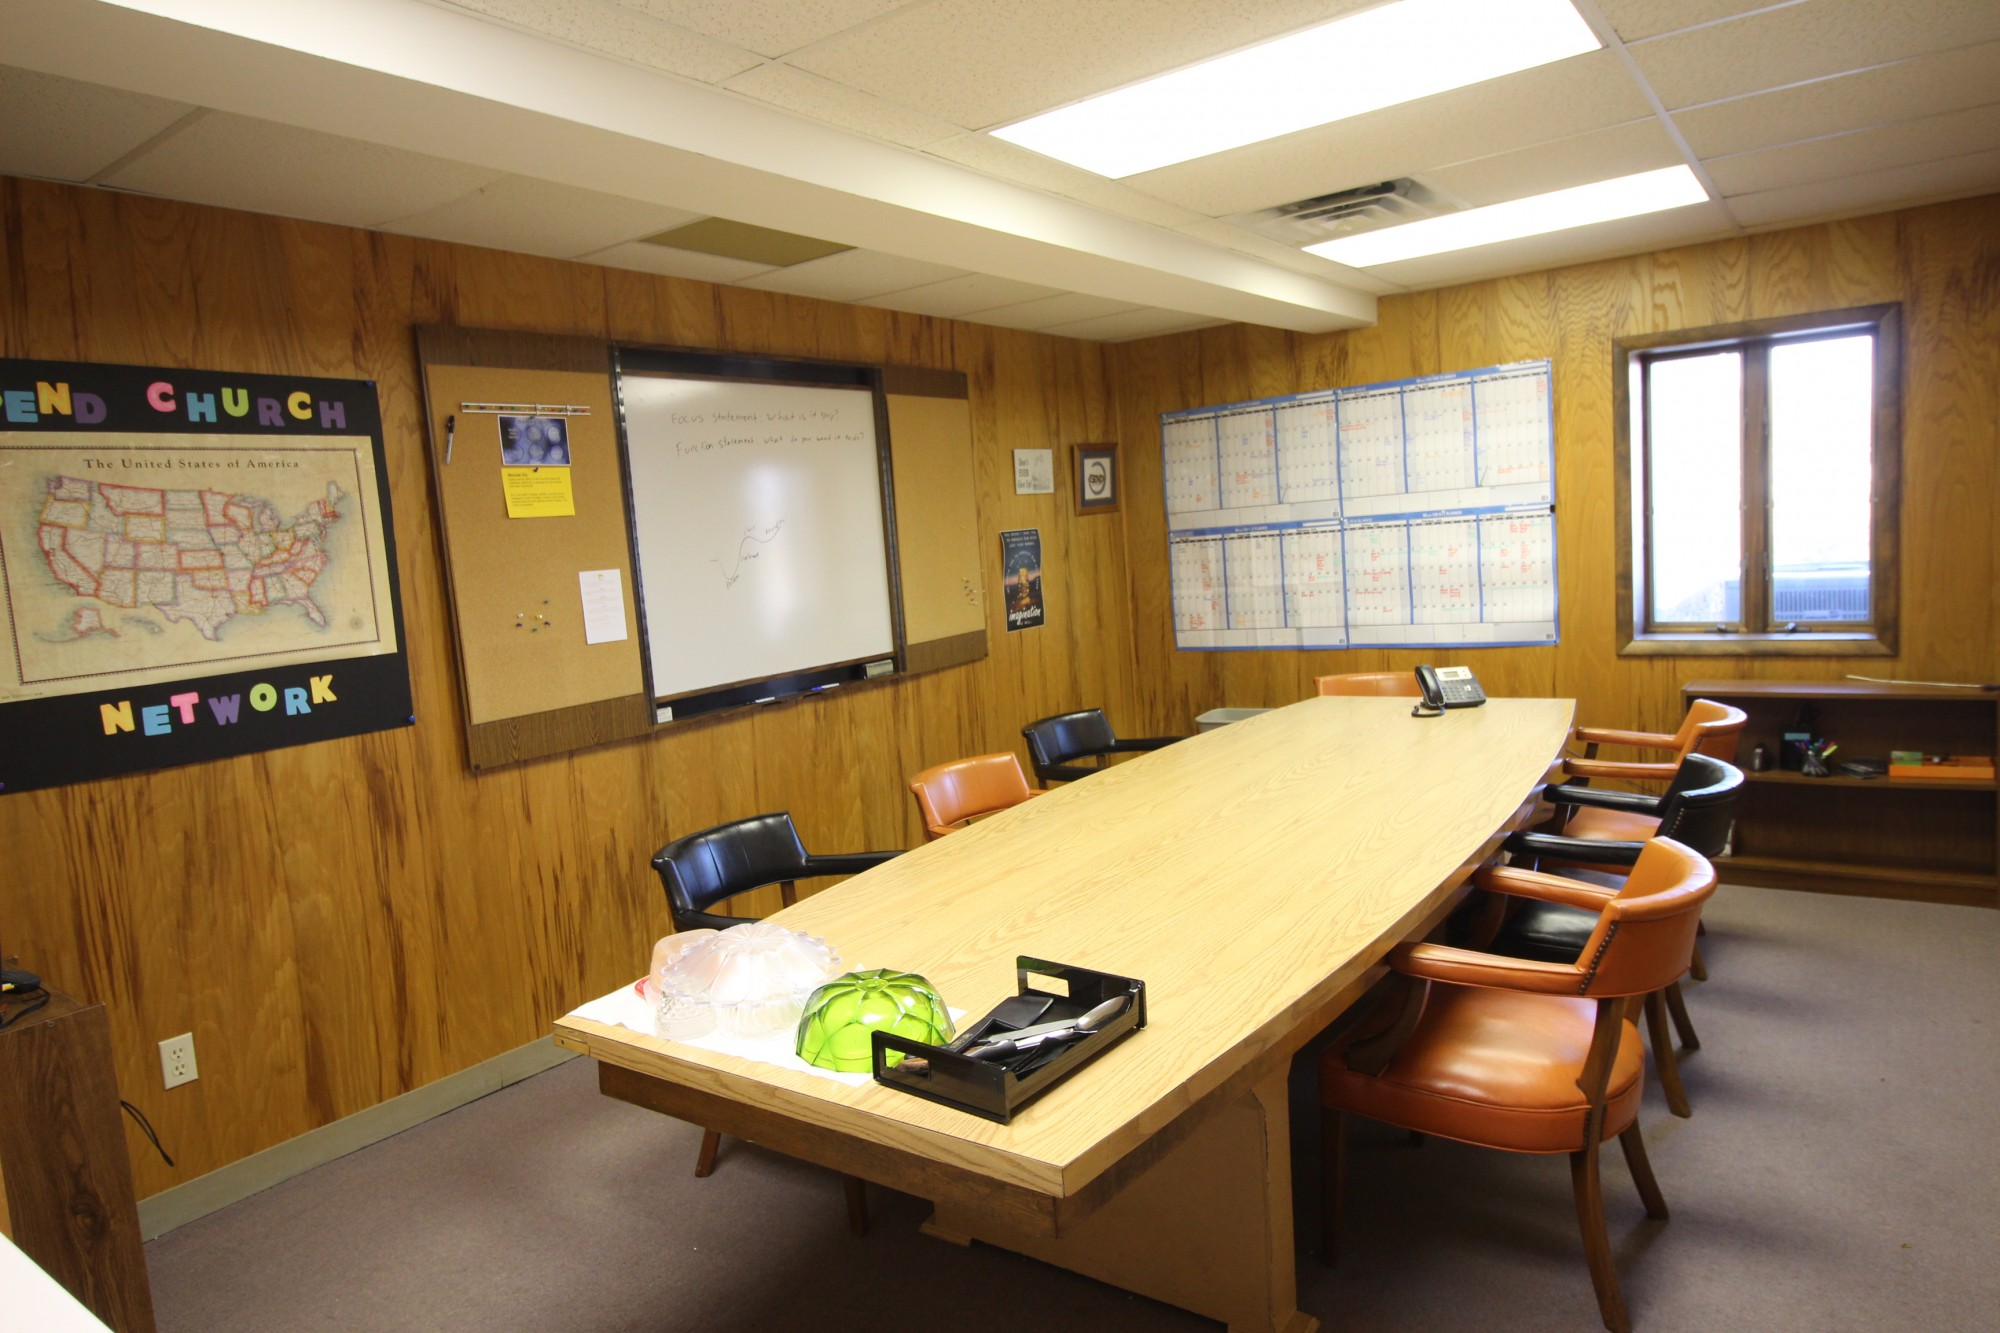 This is a meeting room with table.